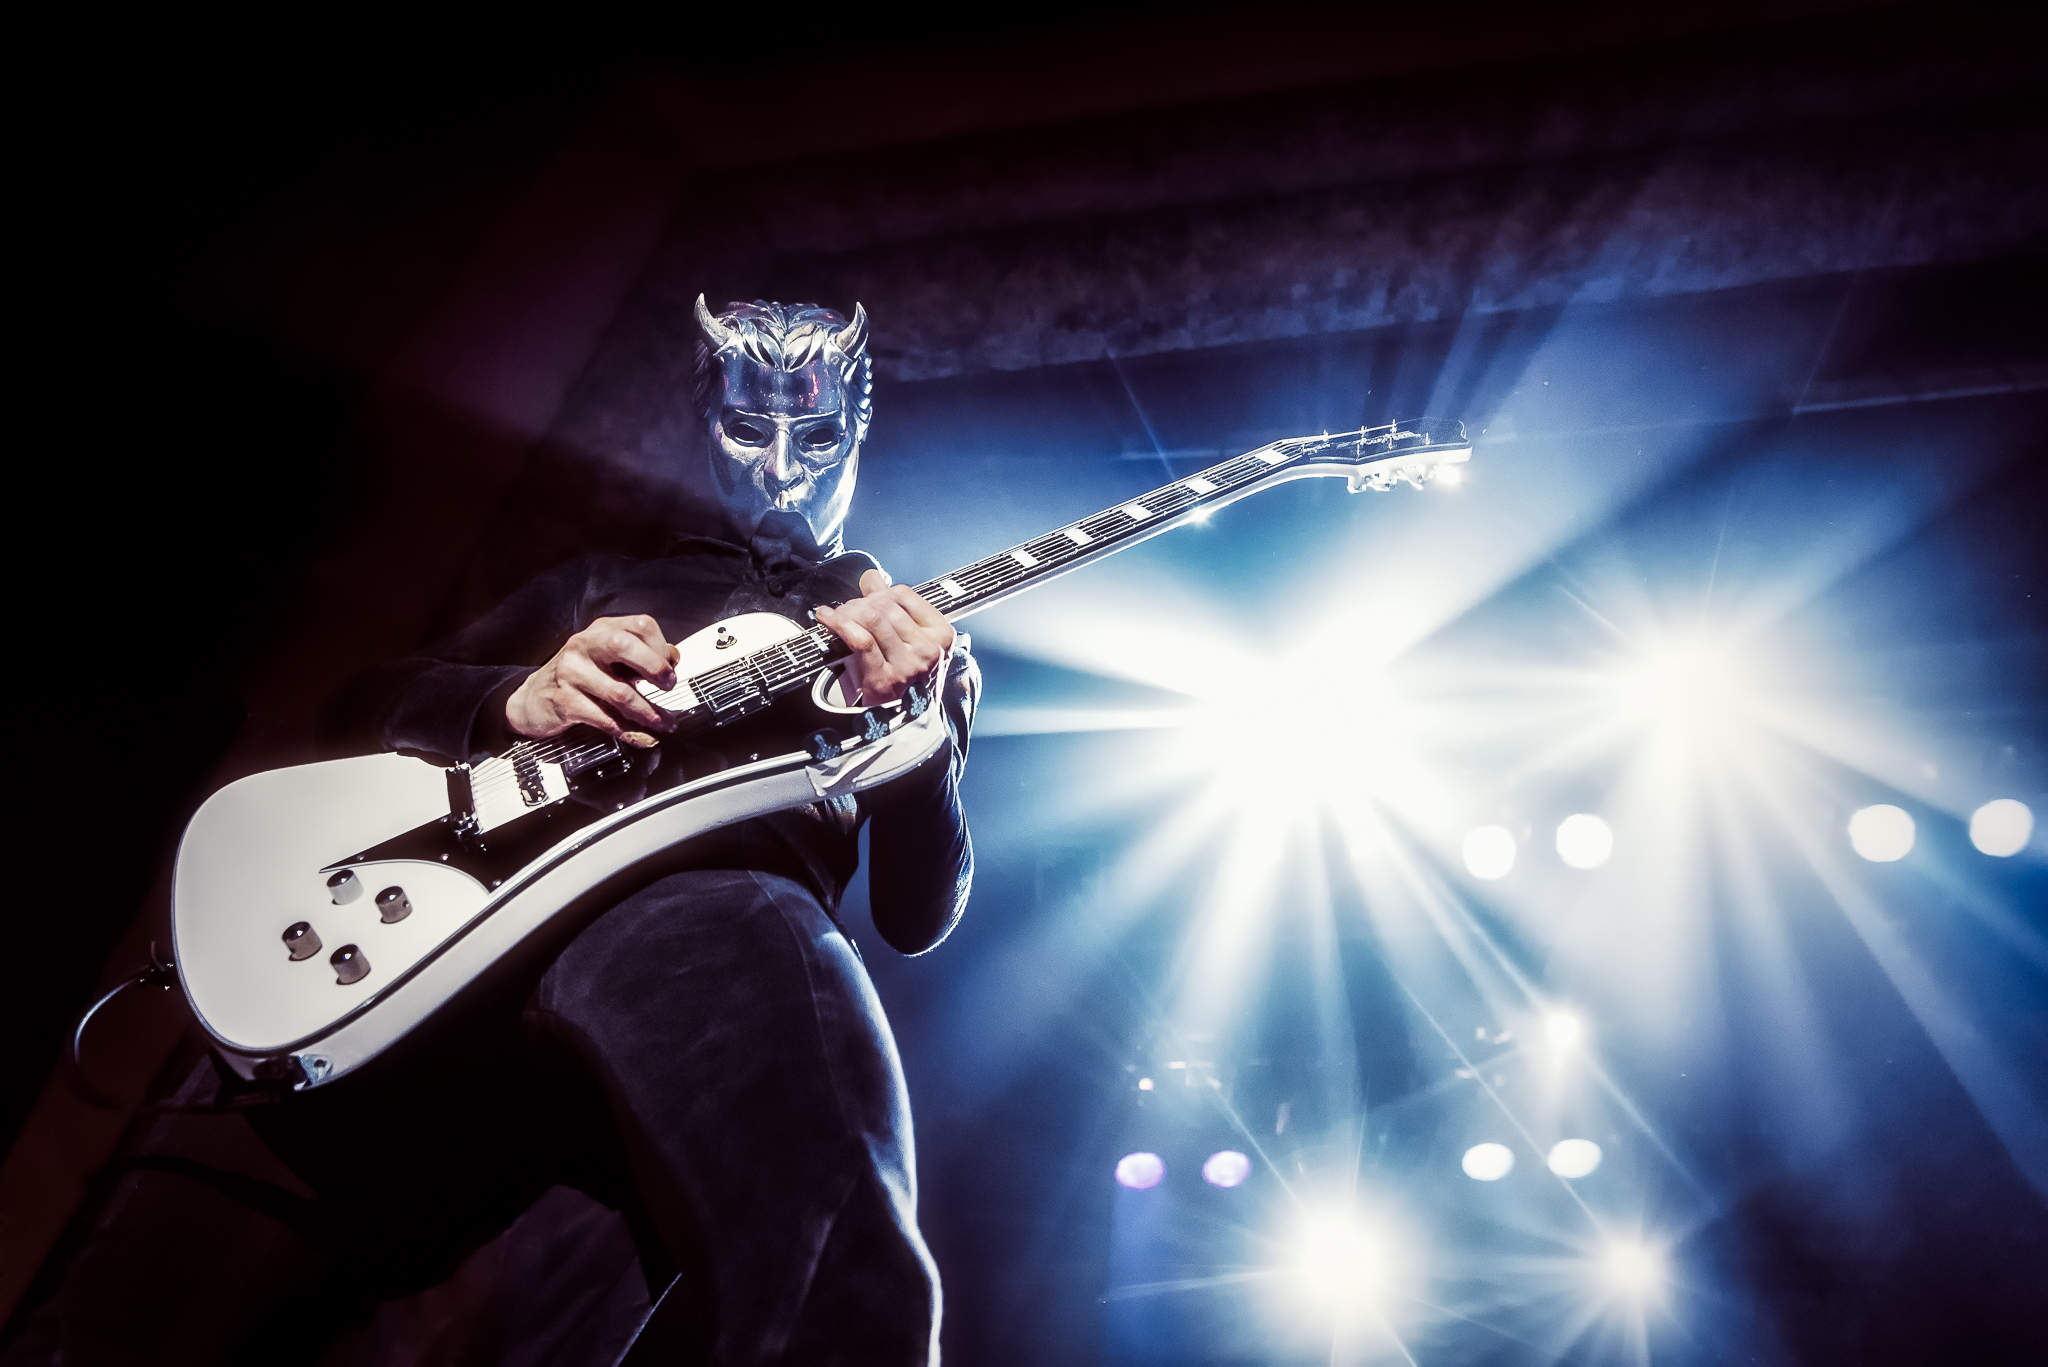 Melbourne music concert photography